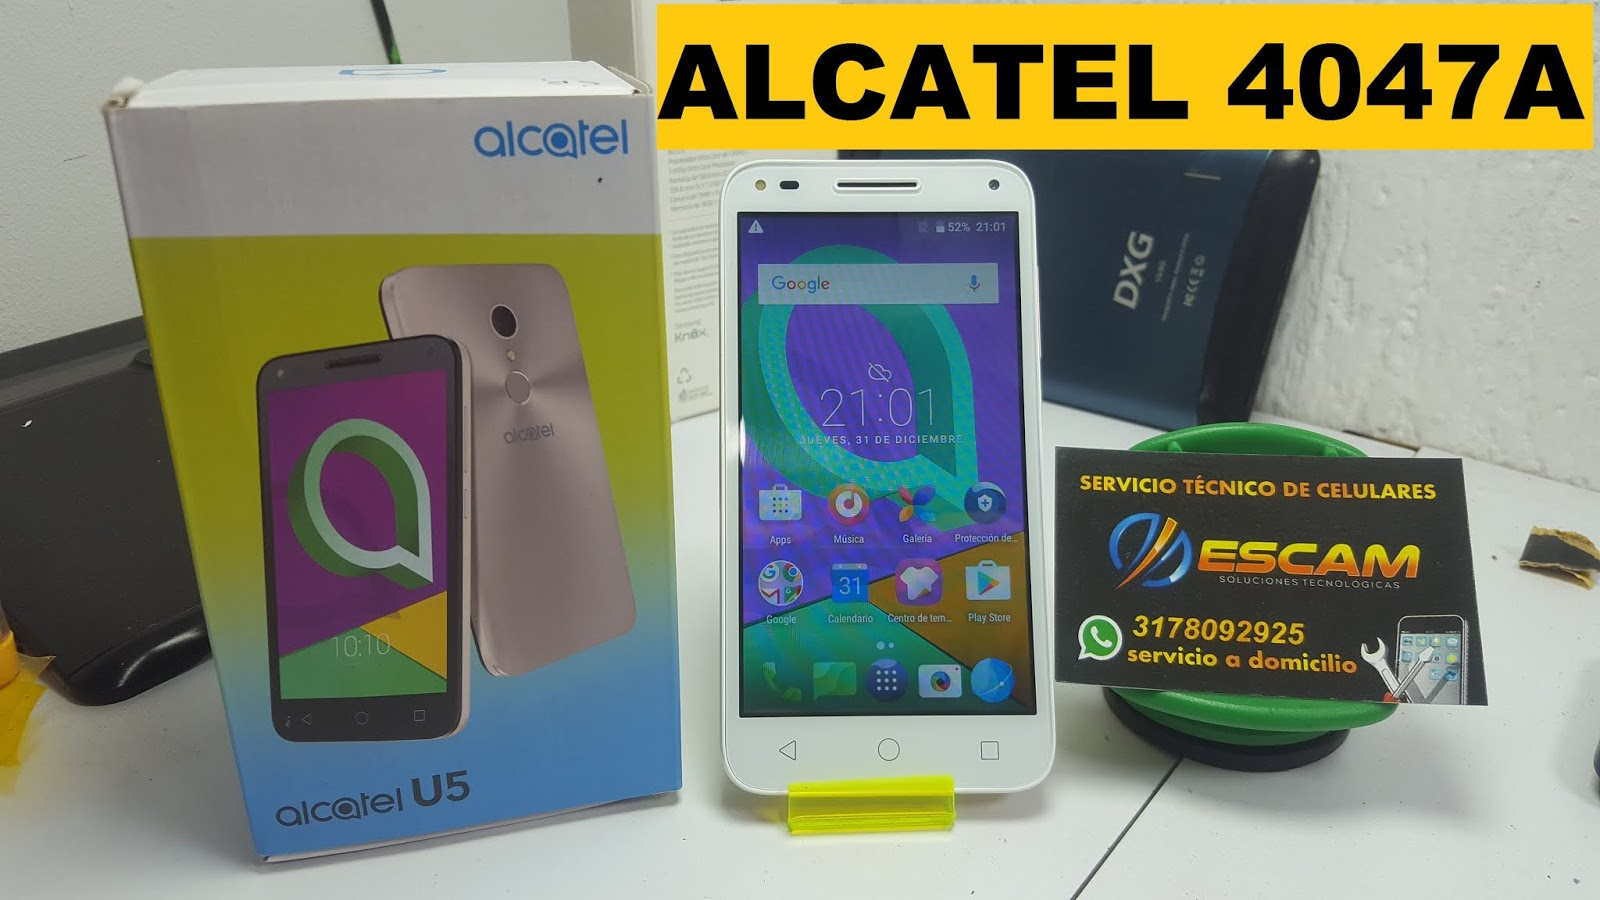 Revivir y/o Actualizar ALCATEL 4047A (Rom / Sp Flash Tool / Firmware